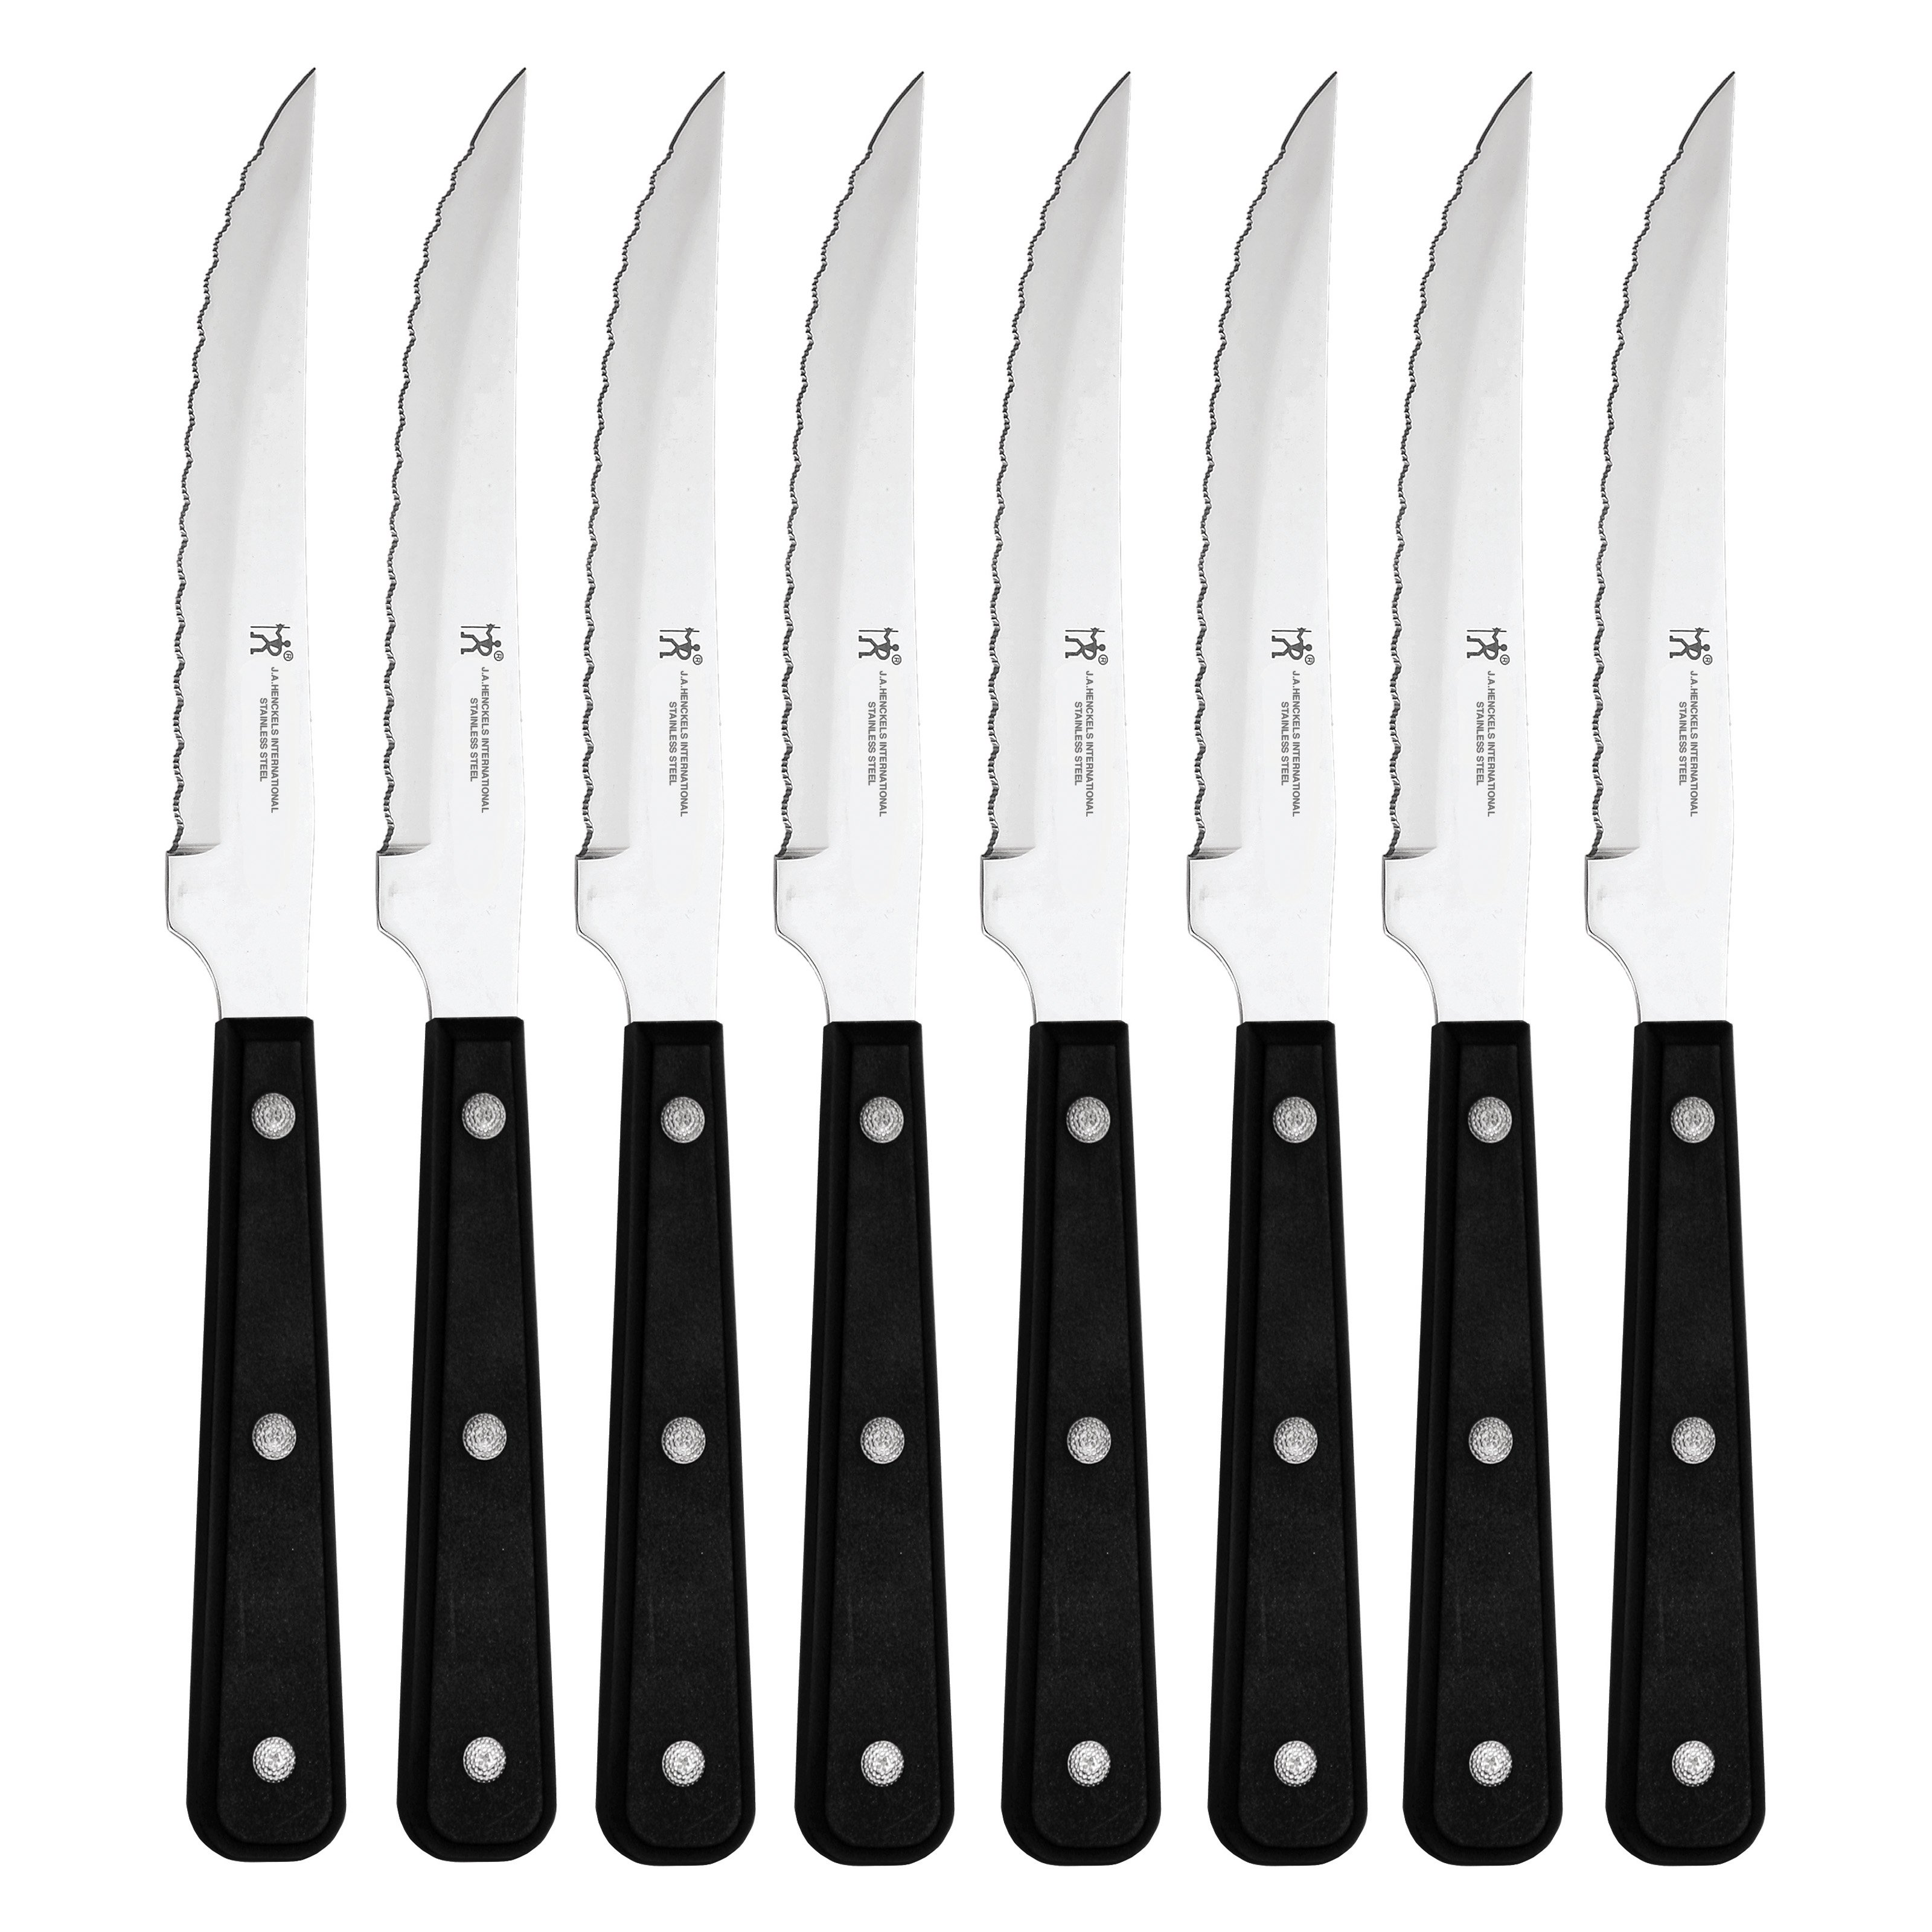 J.A. Henckels International 8-pc Serrated Steak Knife Set